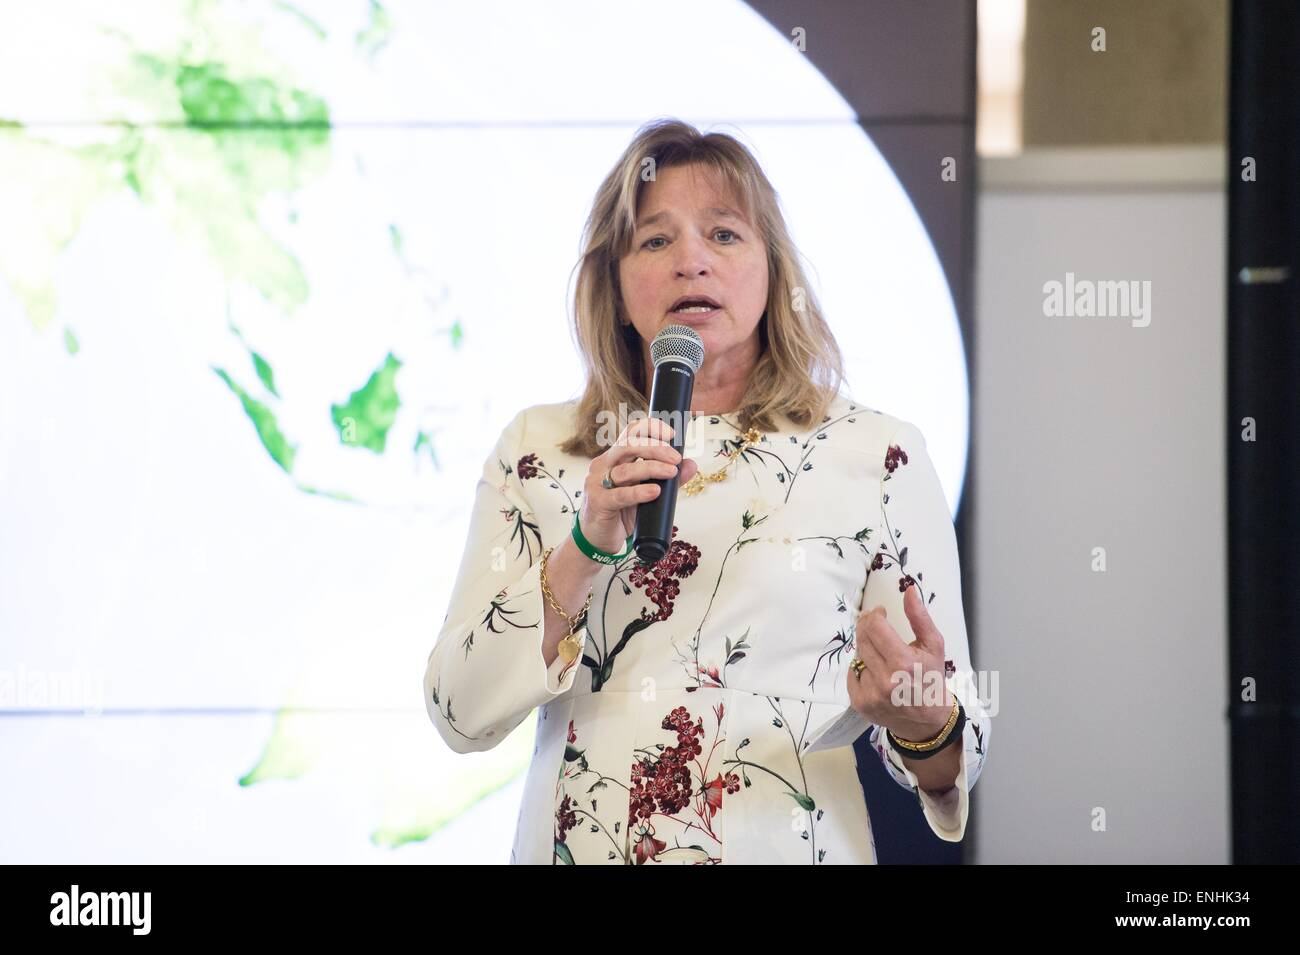 Dr. Ellen Stofan, chief scientist, at NASA speaks during an Earth Day event at Union Station April 22, 2015 in Washington, - Stock Image